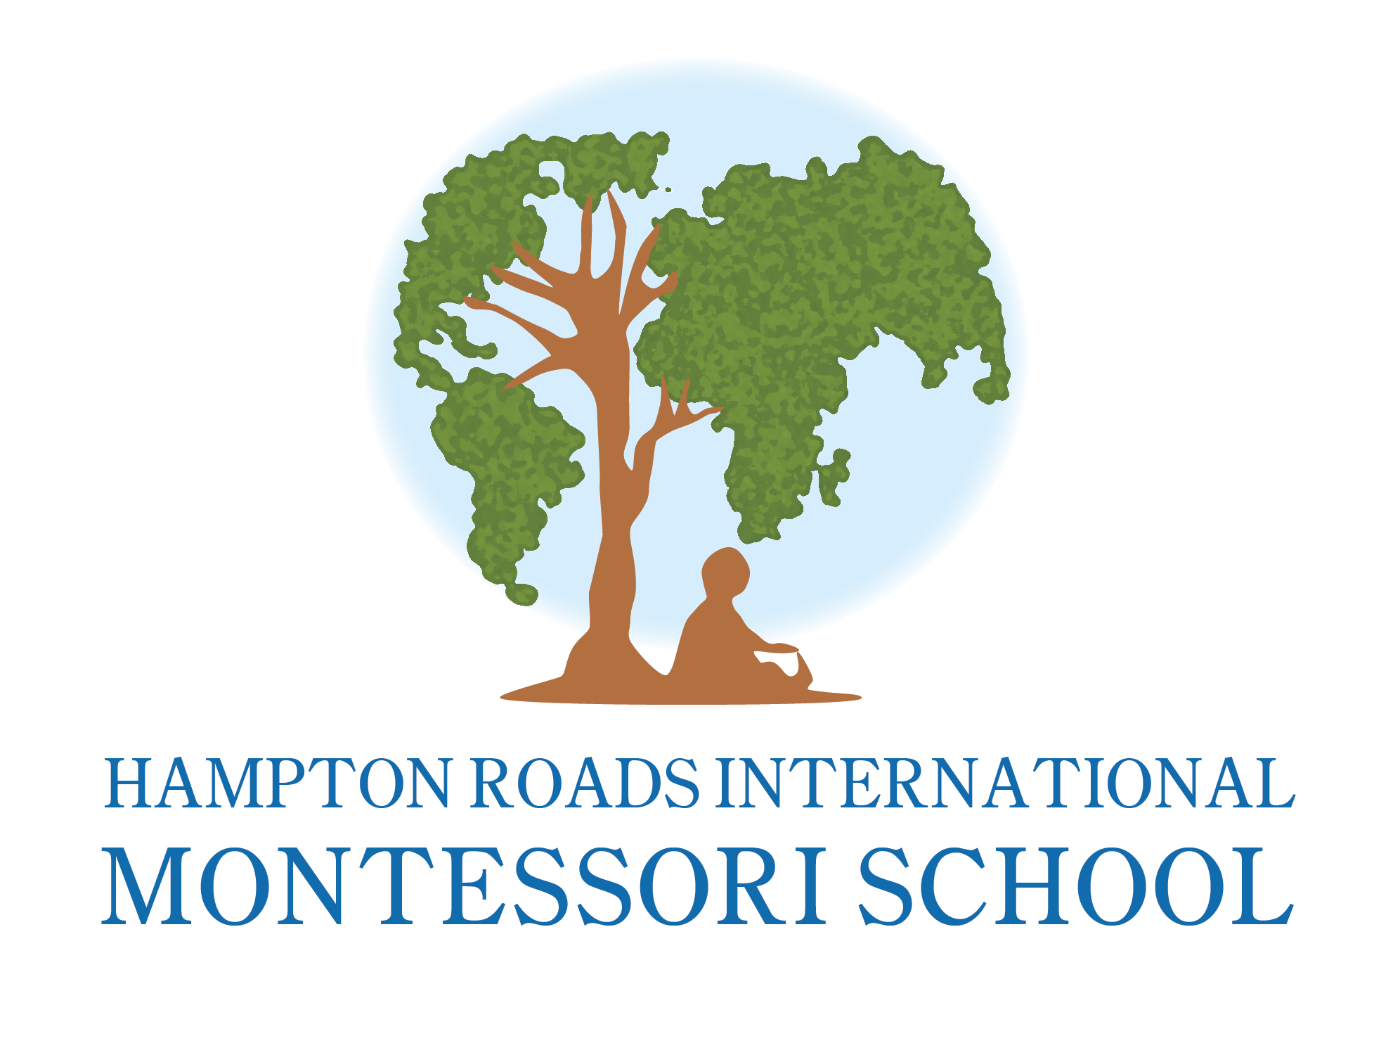 Hampton Roads International Montessori School